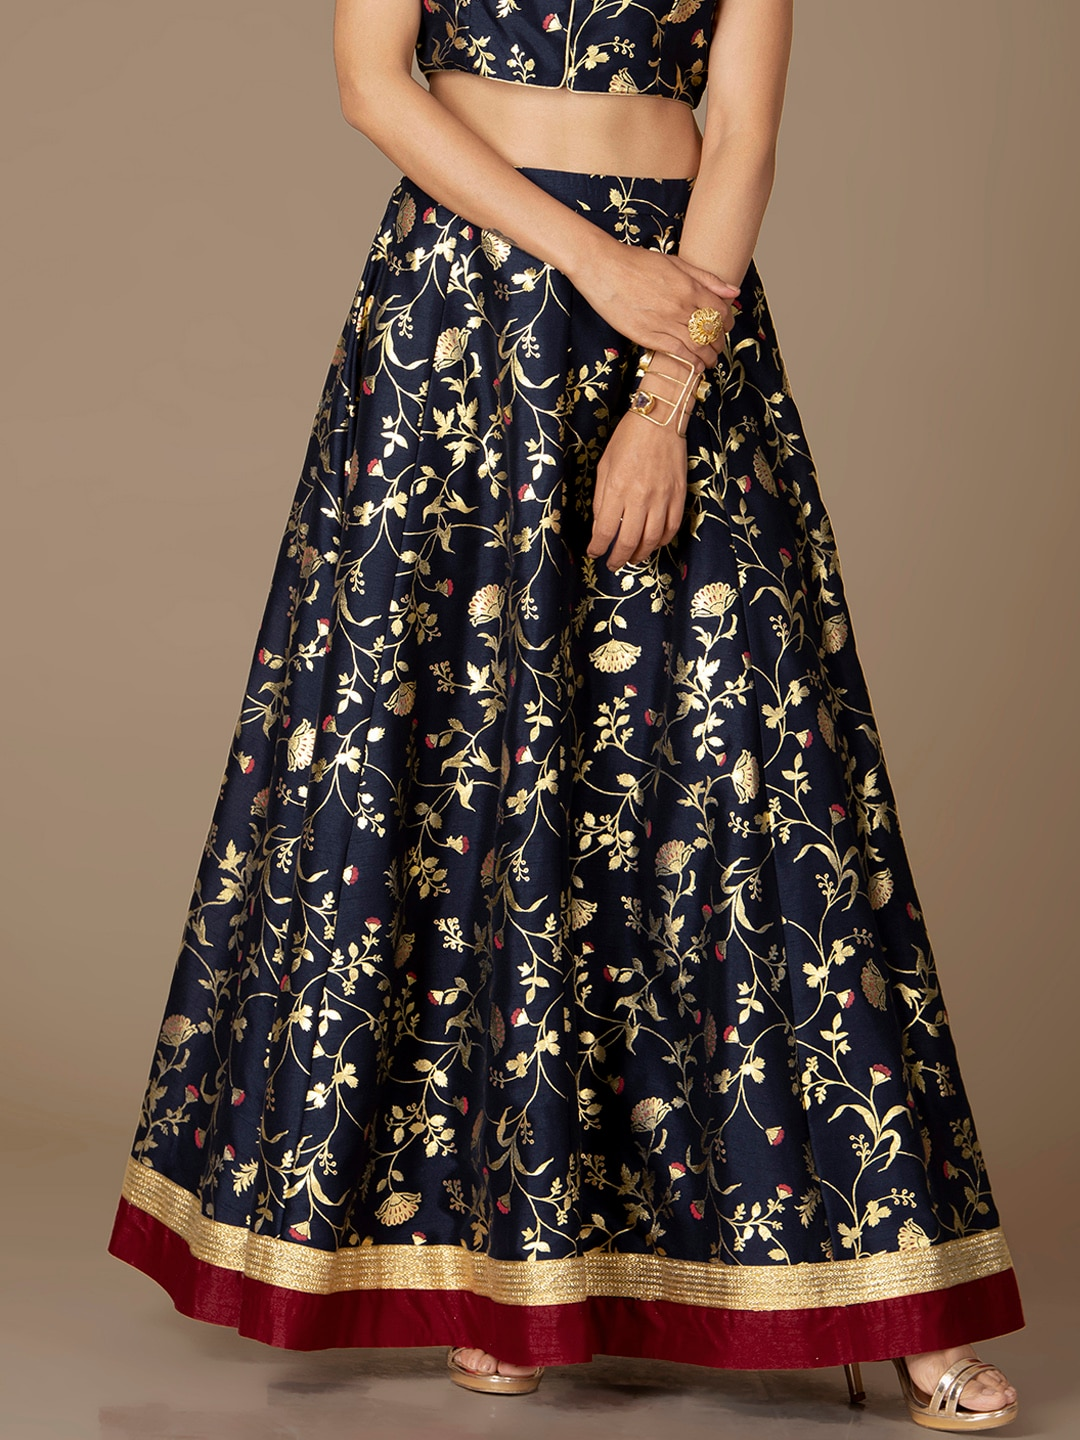 f1848f2145646 Silk Skirts - Buy Silk Skirts online in India